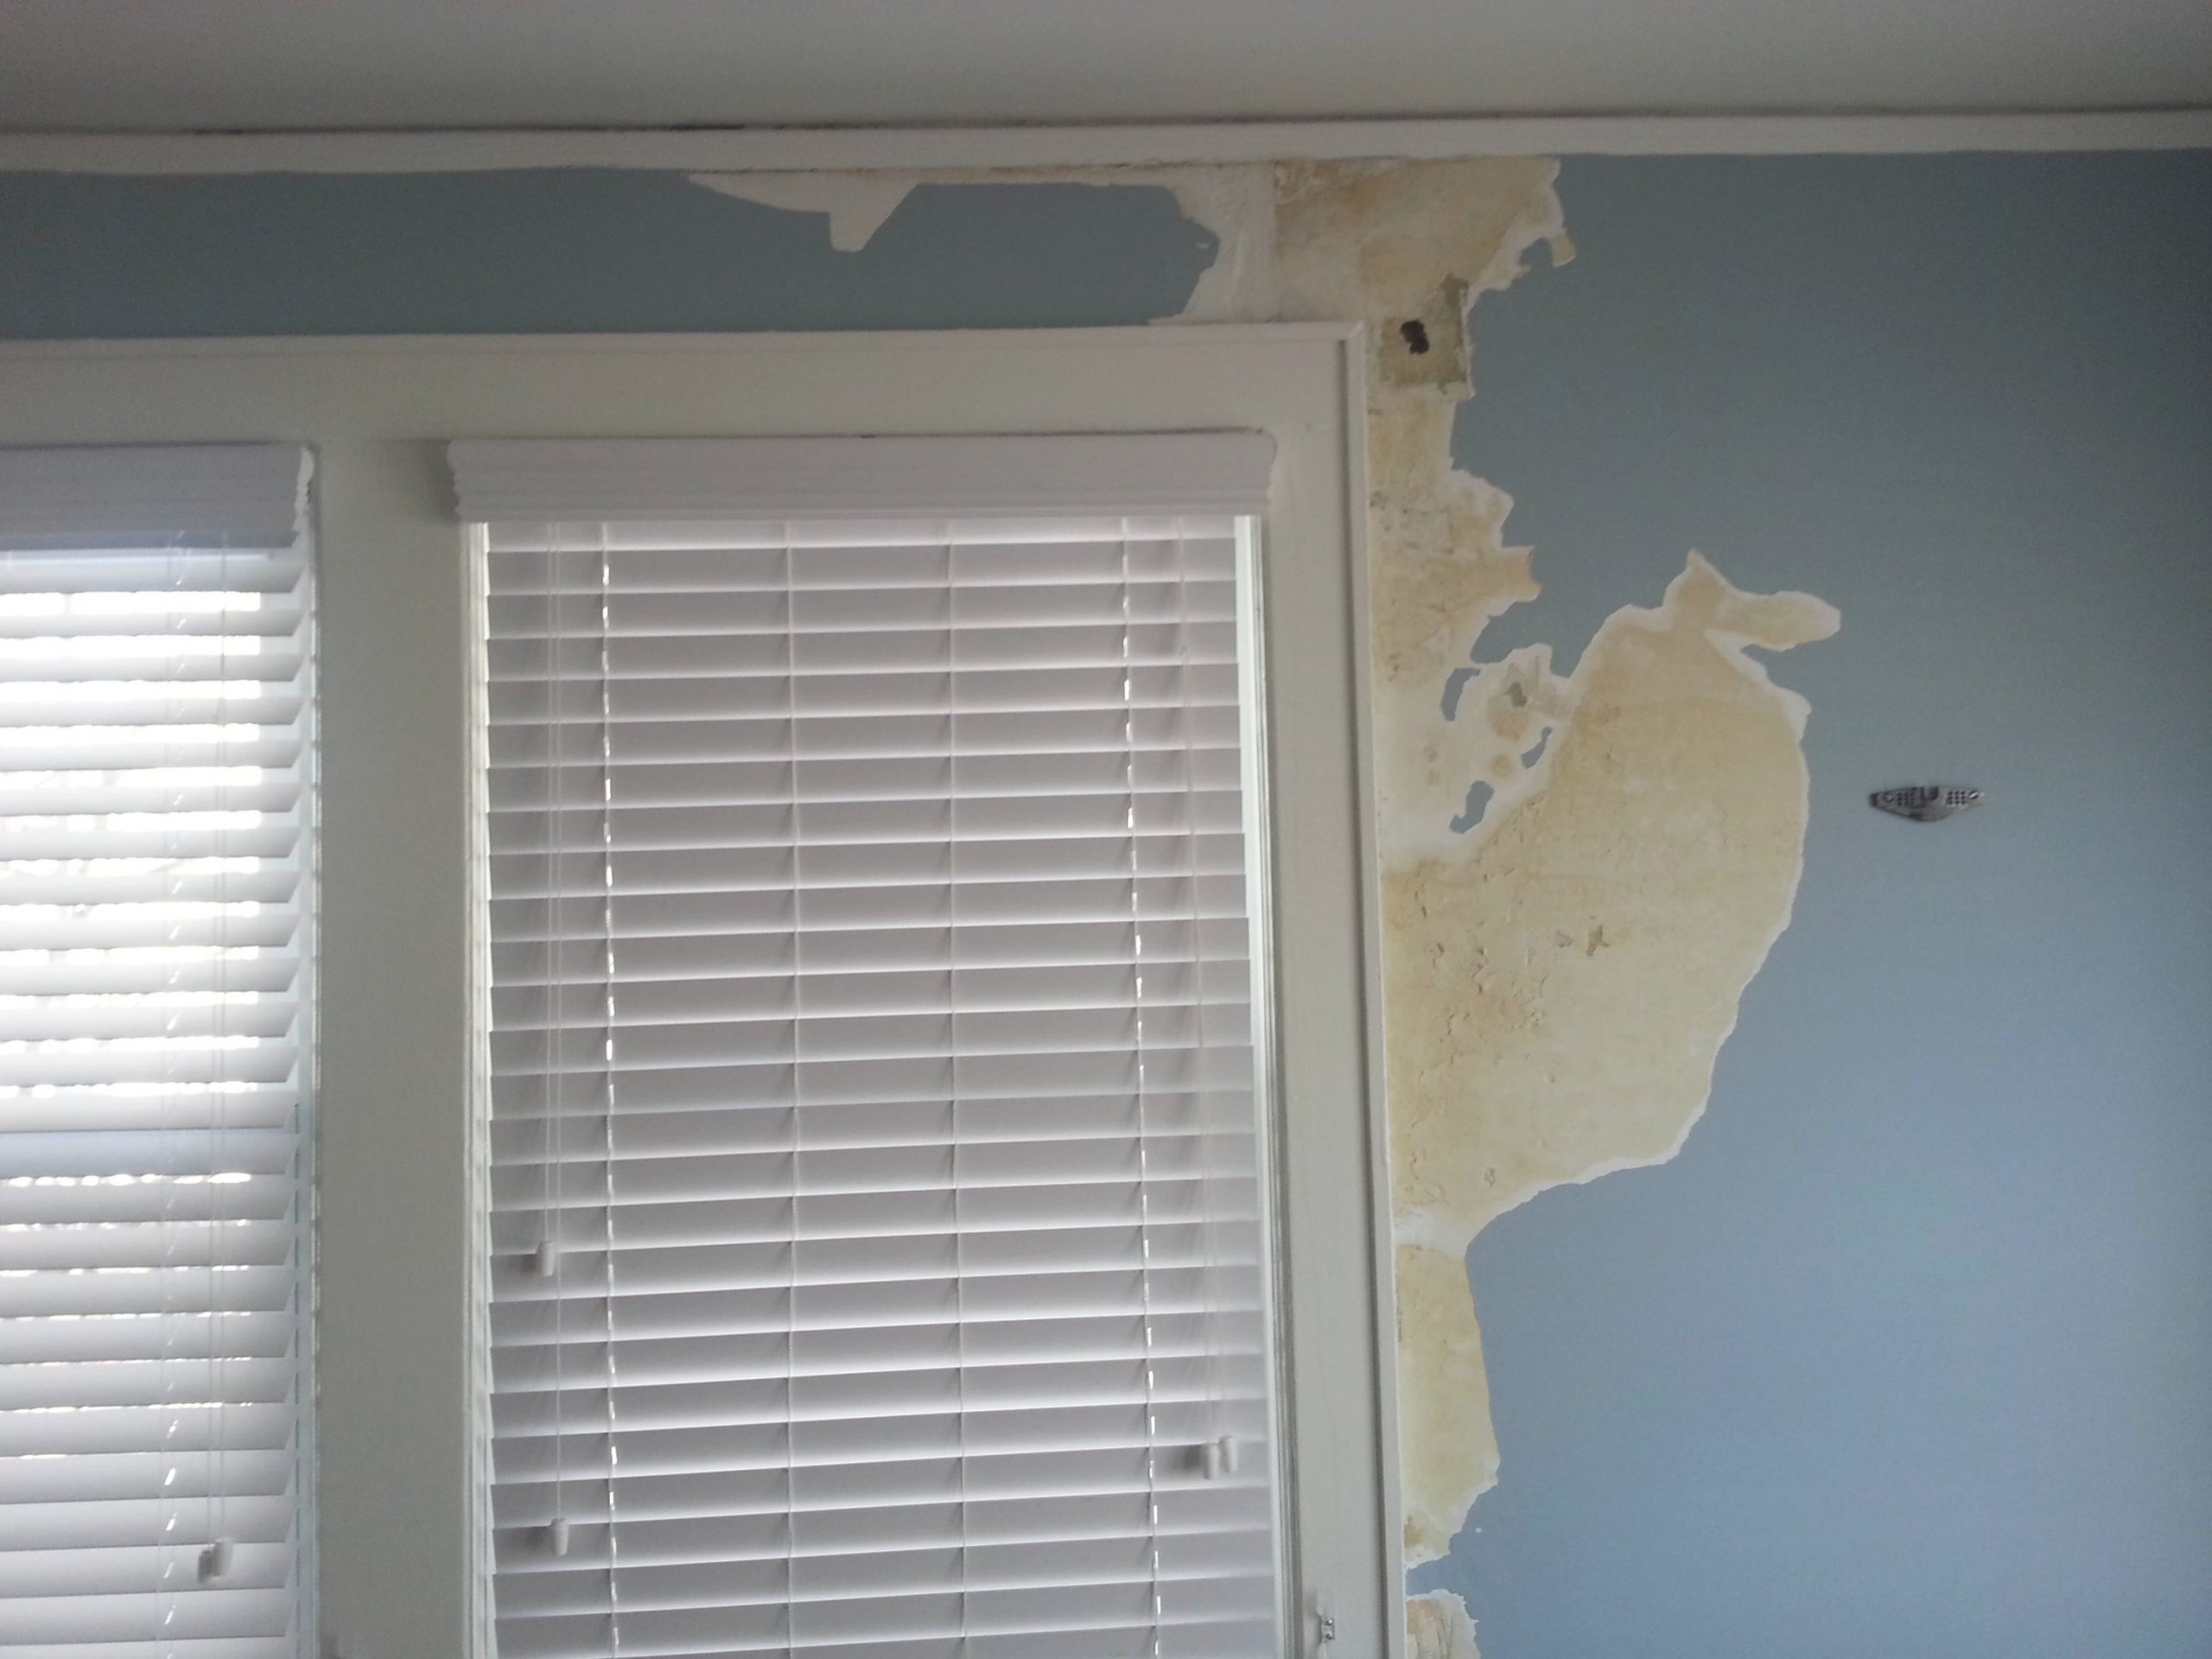 Plaster Wall Ice Damming Water Damage - Home Improvement regarding Drywall Vs Plaster How To Tell